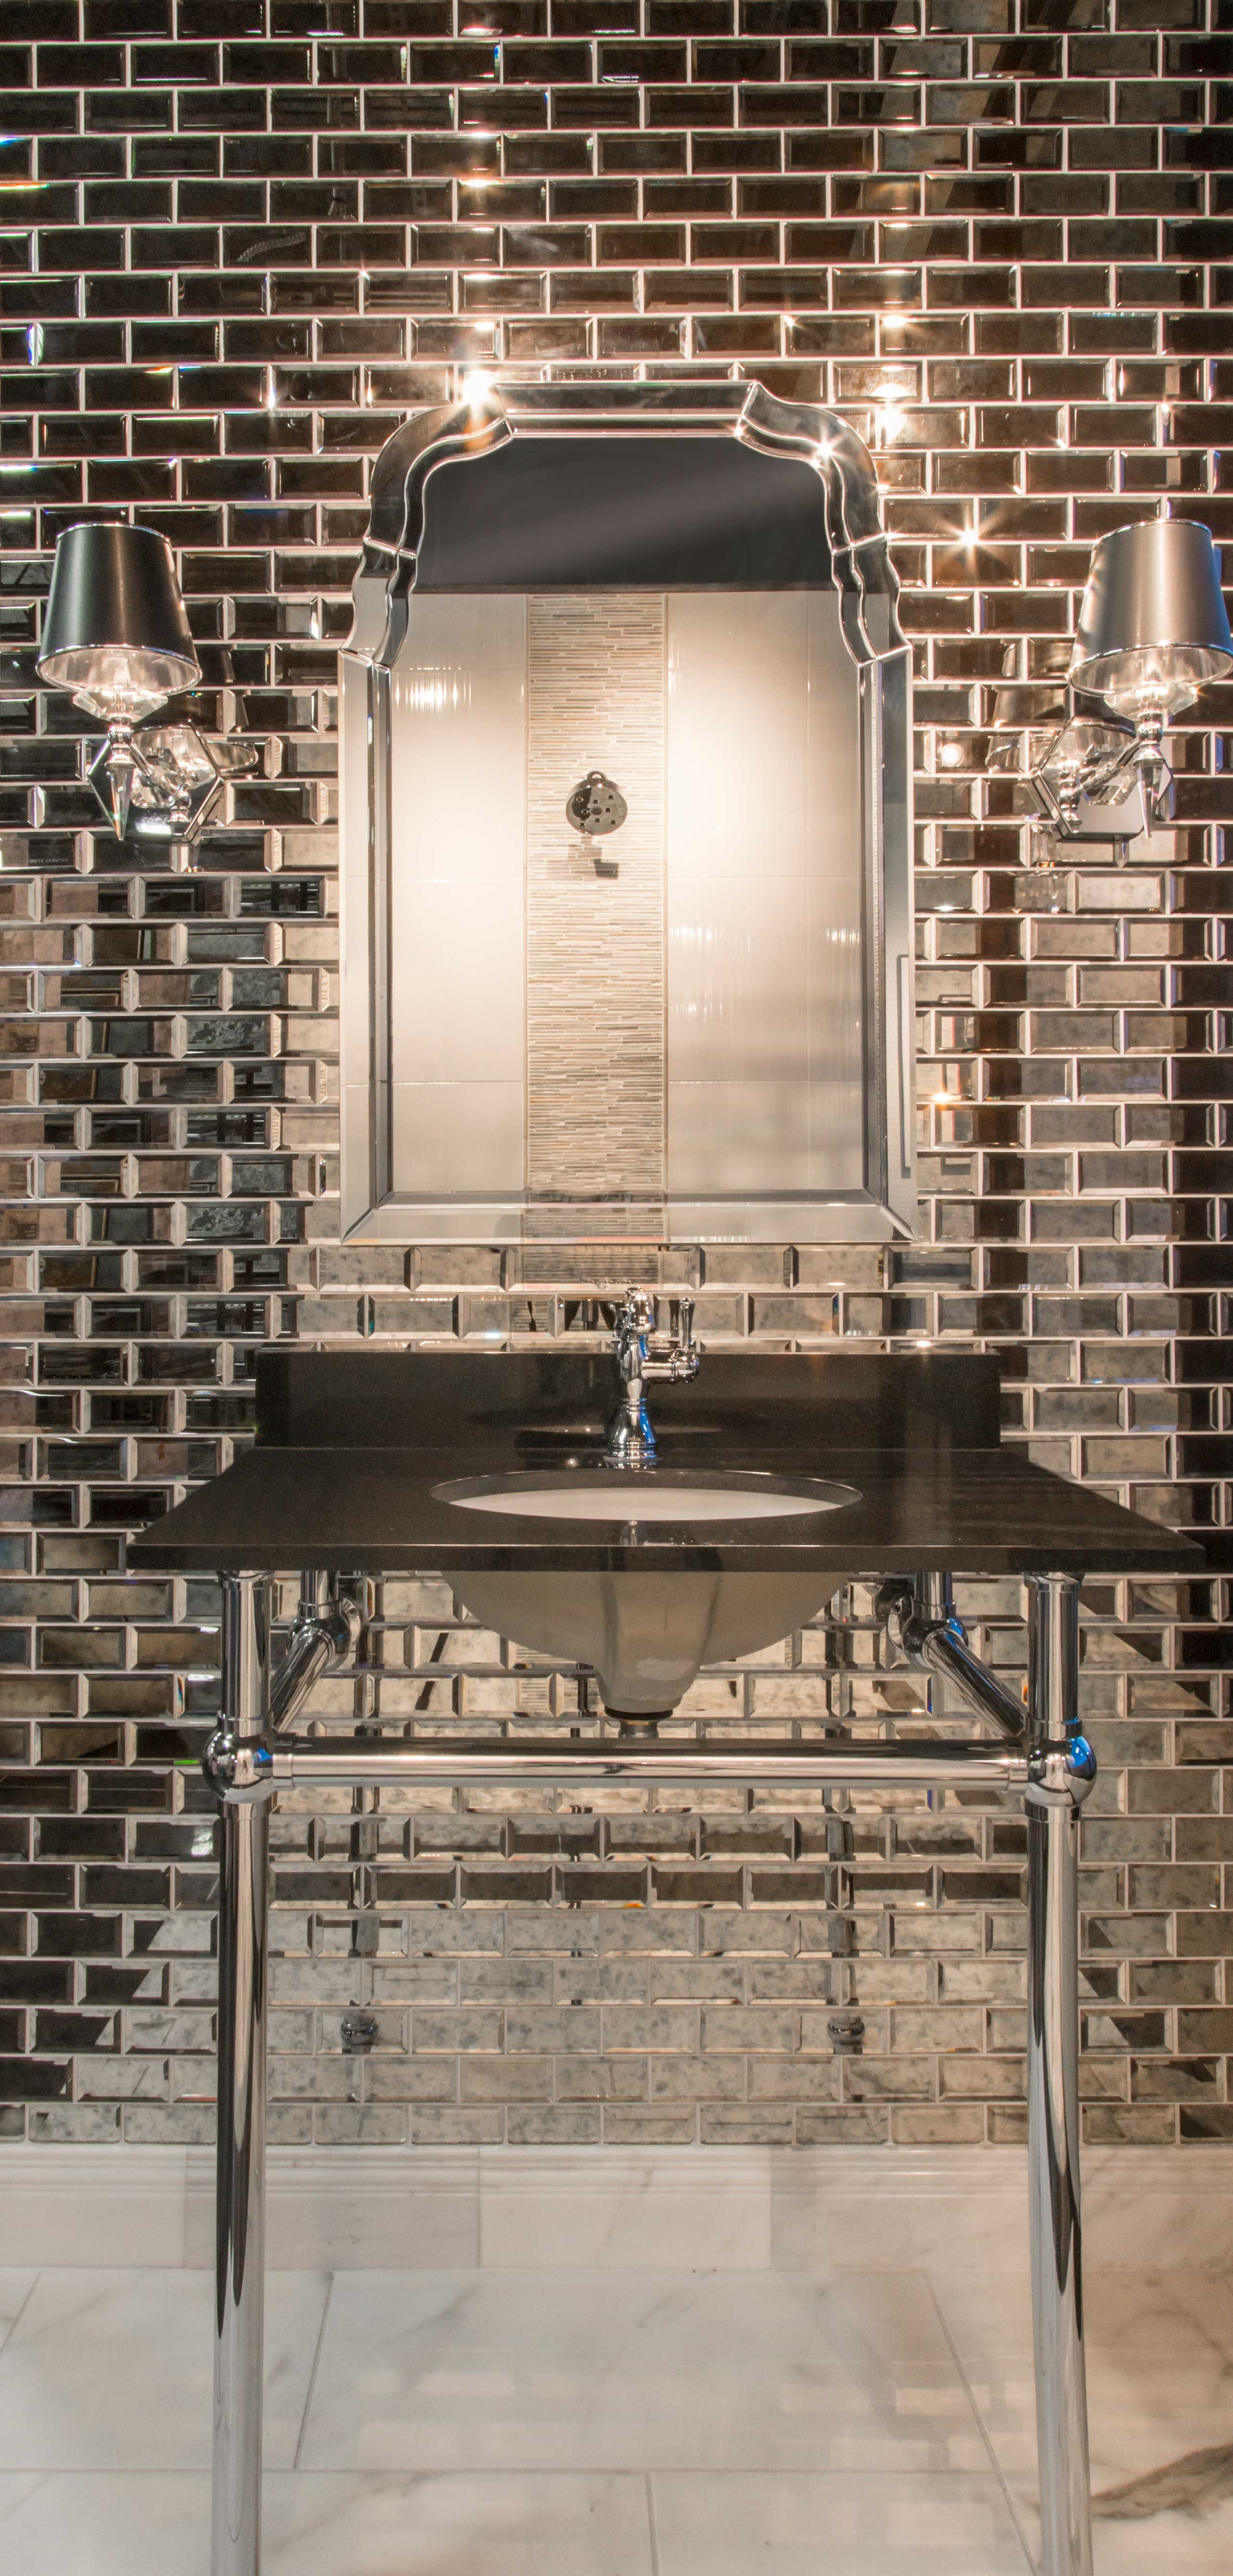 - Infused Metallic And Reflective Elements In This Bathroom Tile